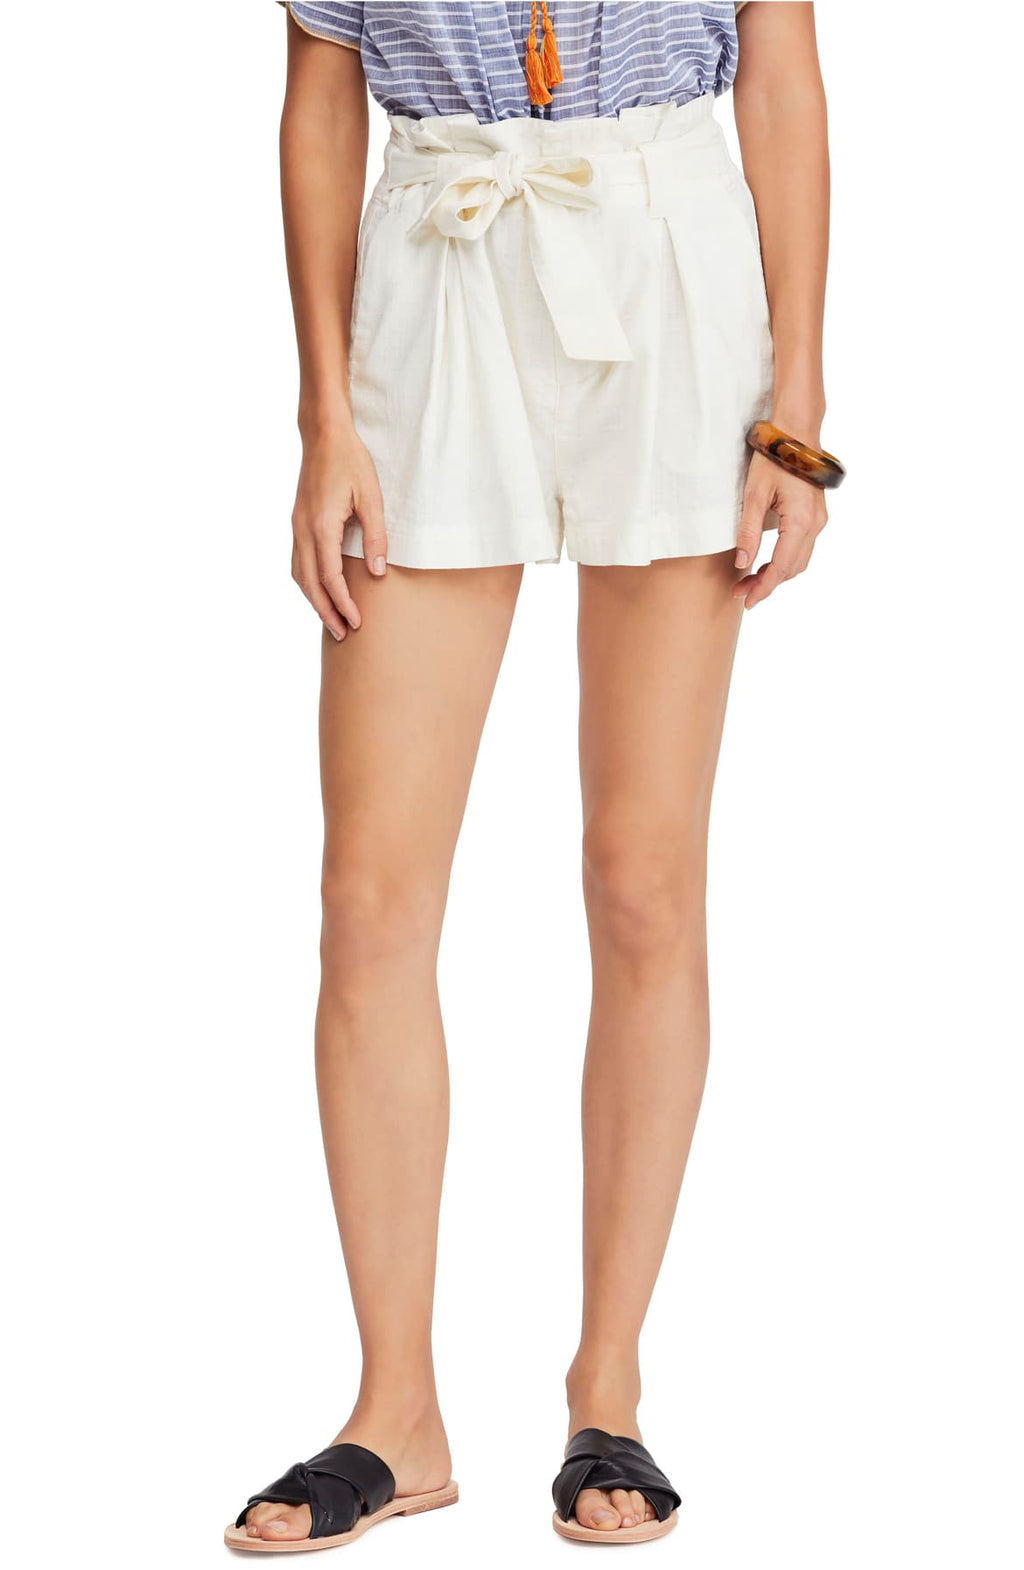 Freepeople high waist shorts